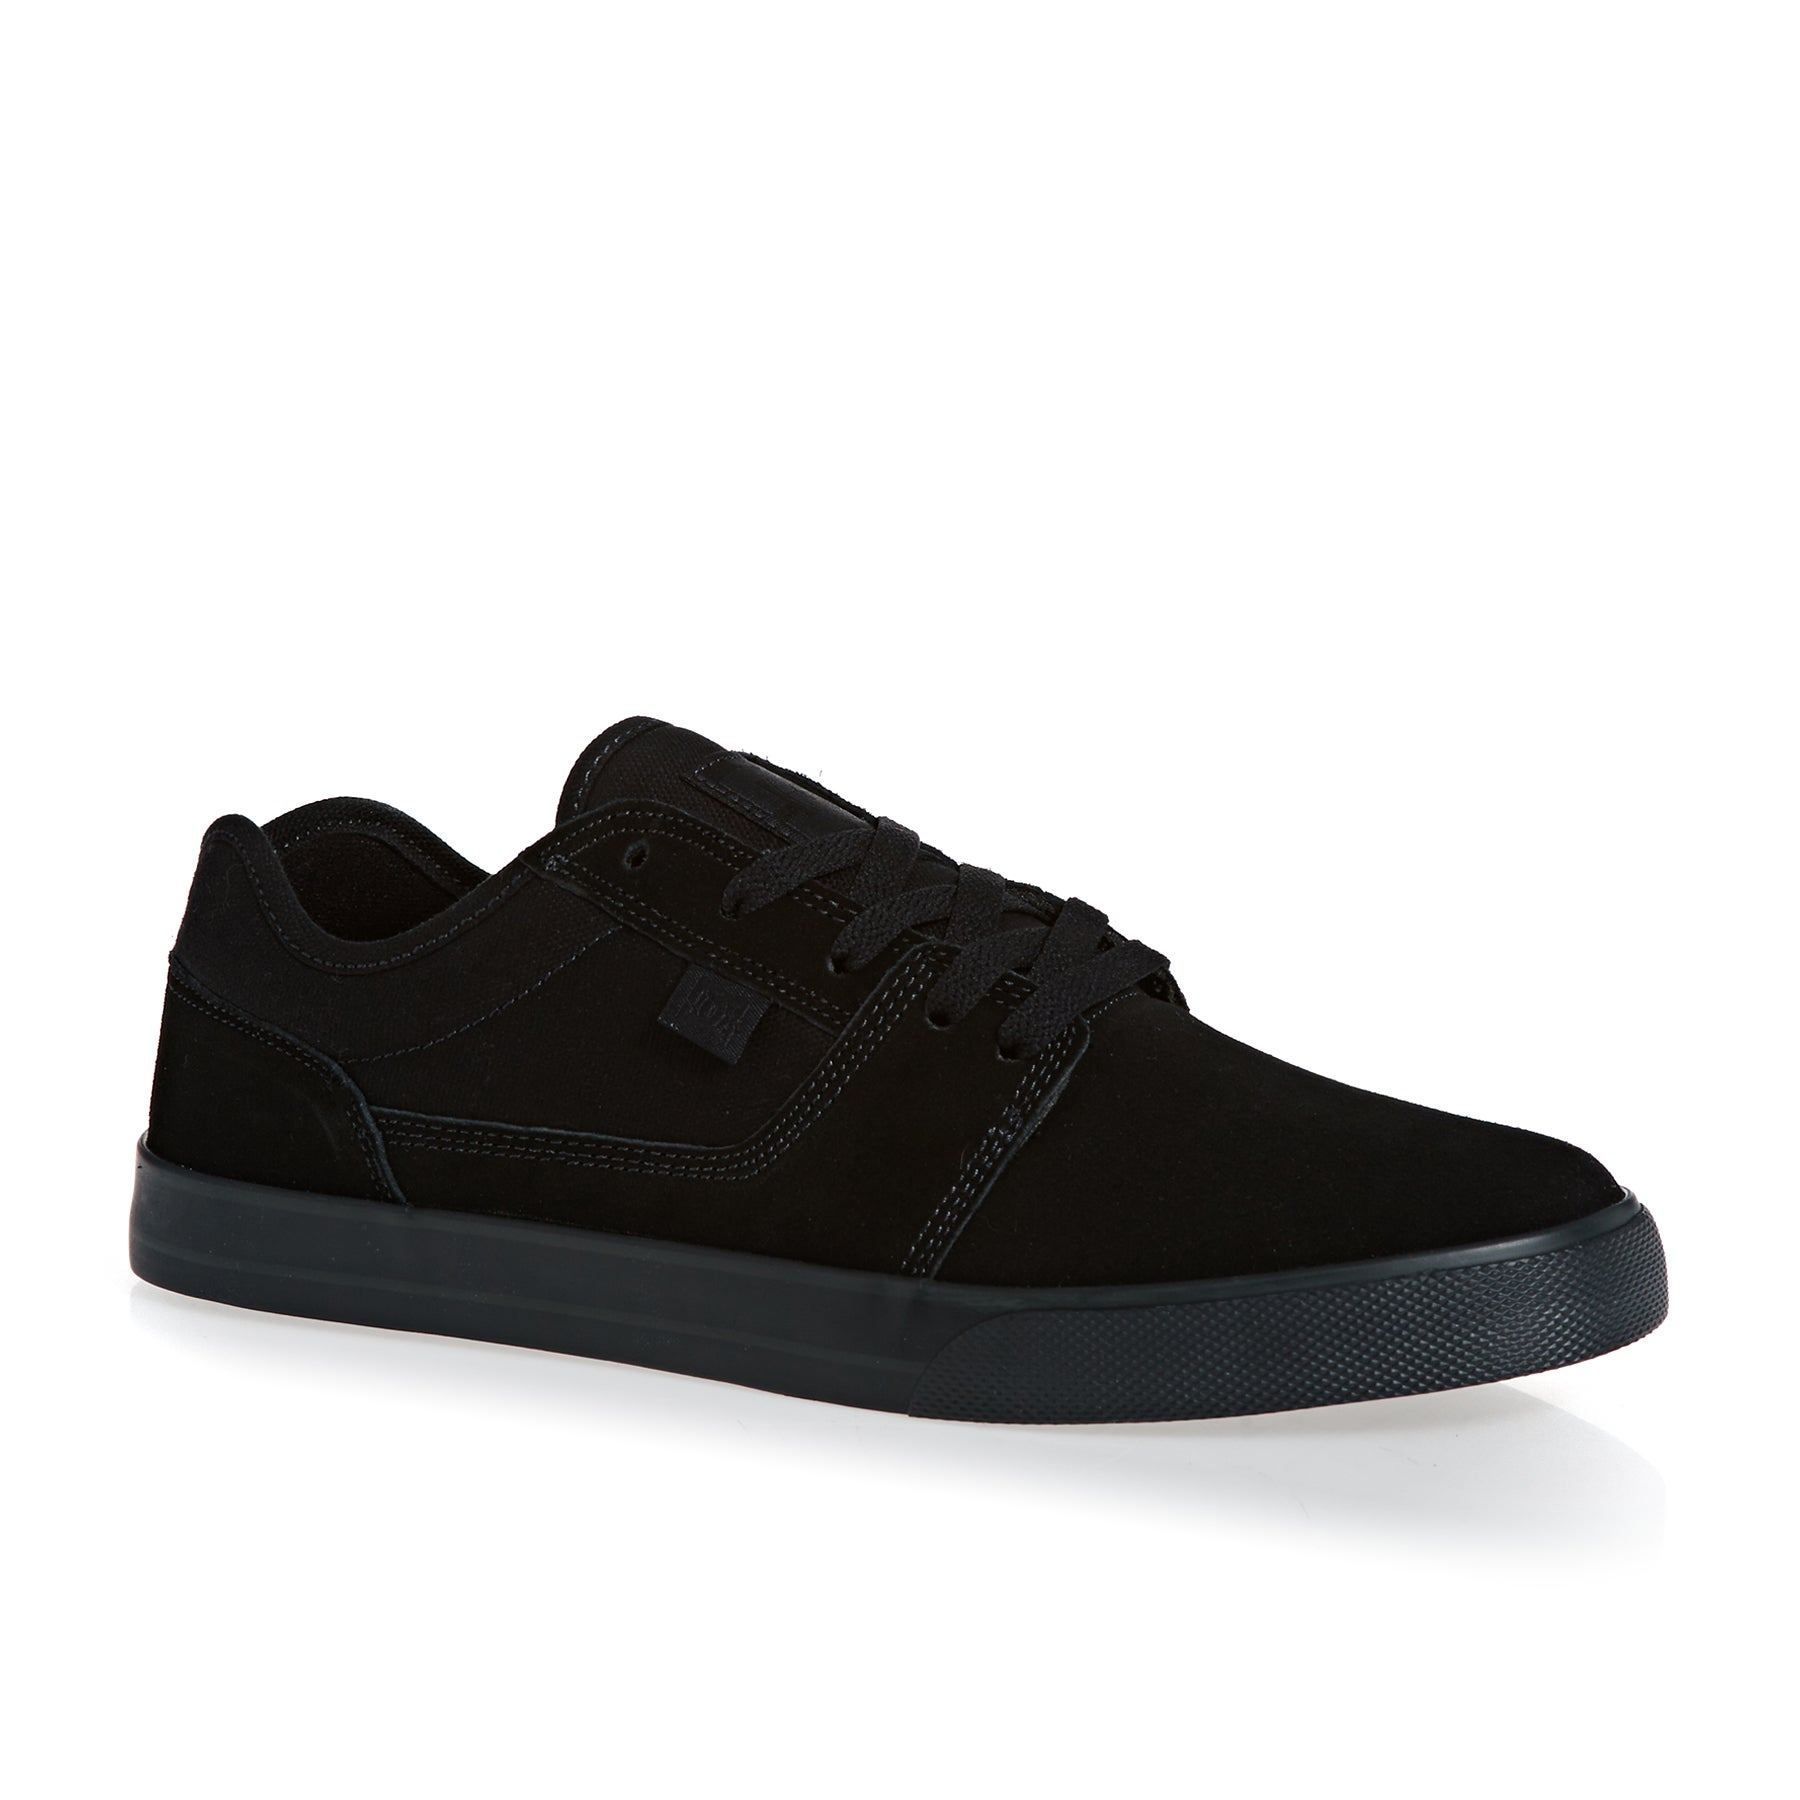 DC Tonik Shoes - Black Black